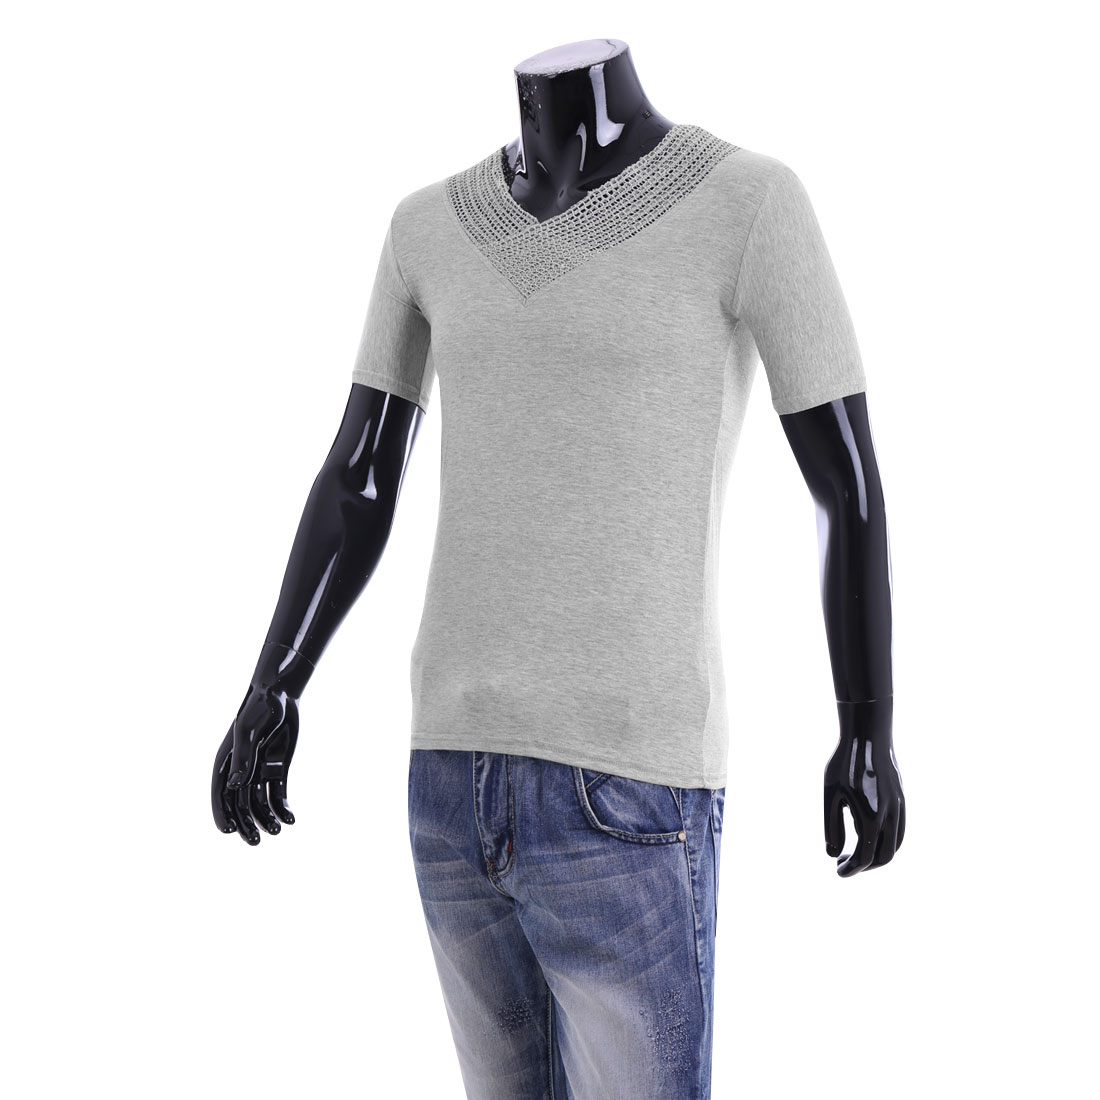 Men V Neck Short Sleeve Casual Stretchy T-shirt Light Gray S